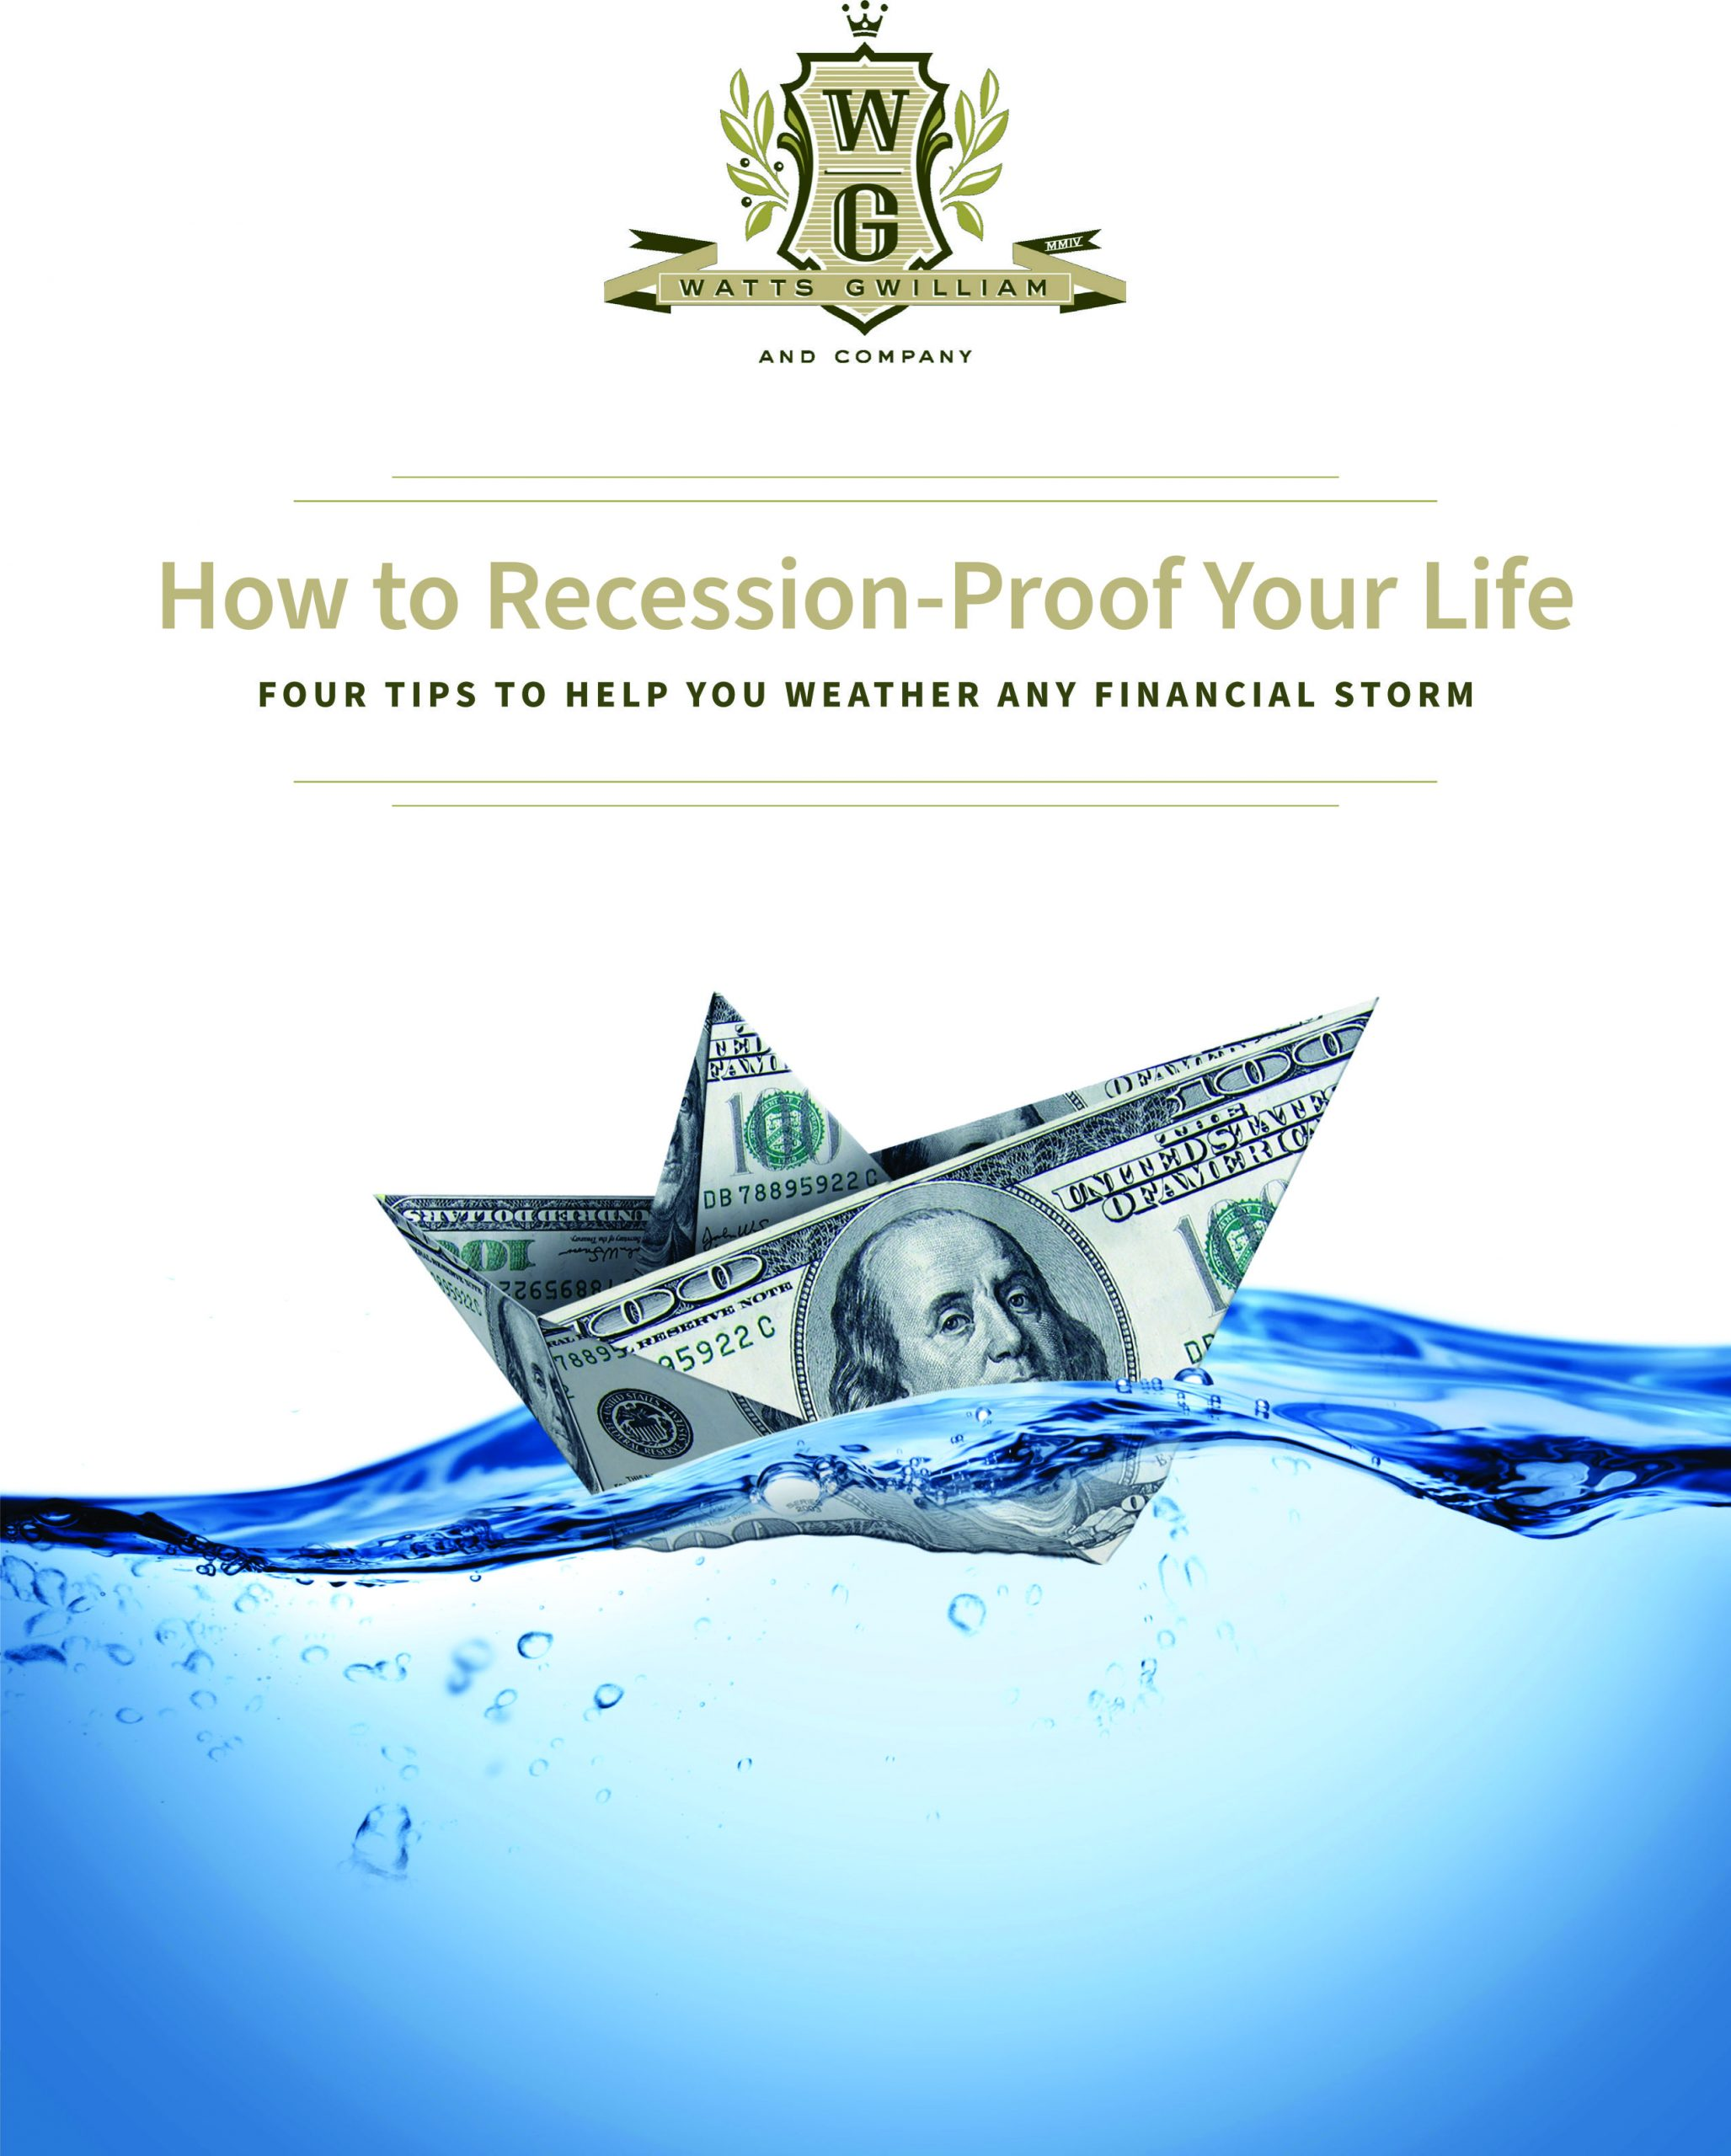 Download our Free ebook: How to Recession-Proof Your Life